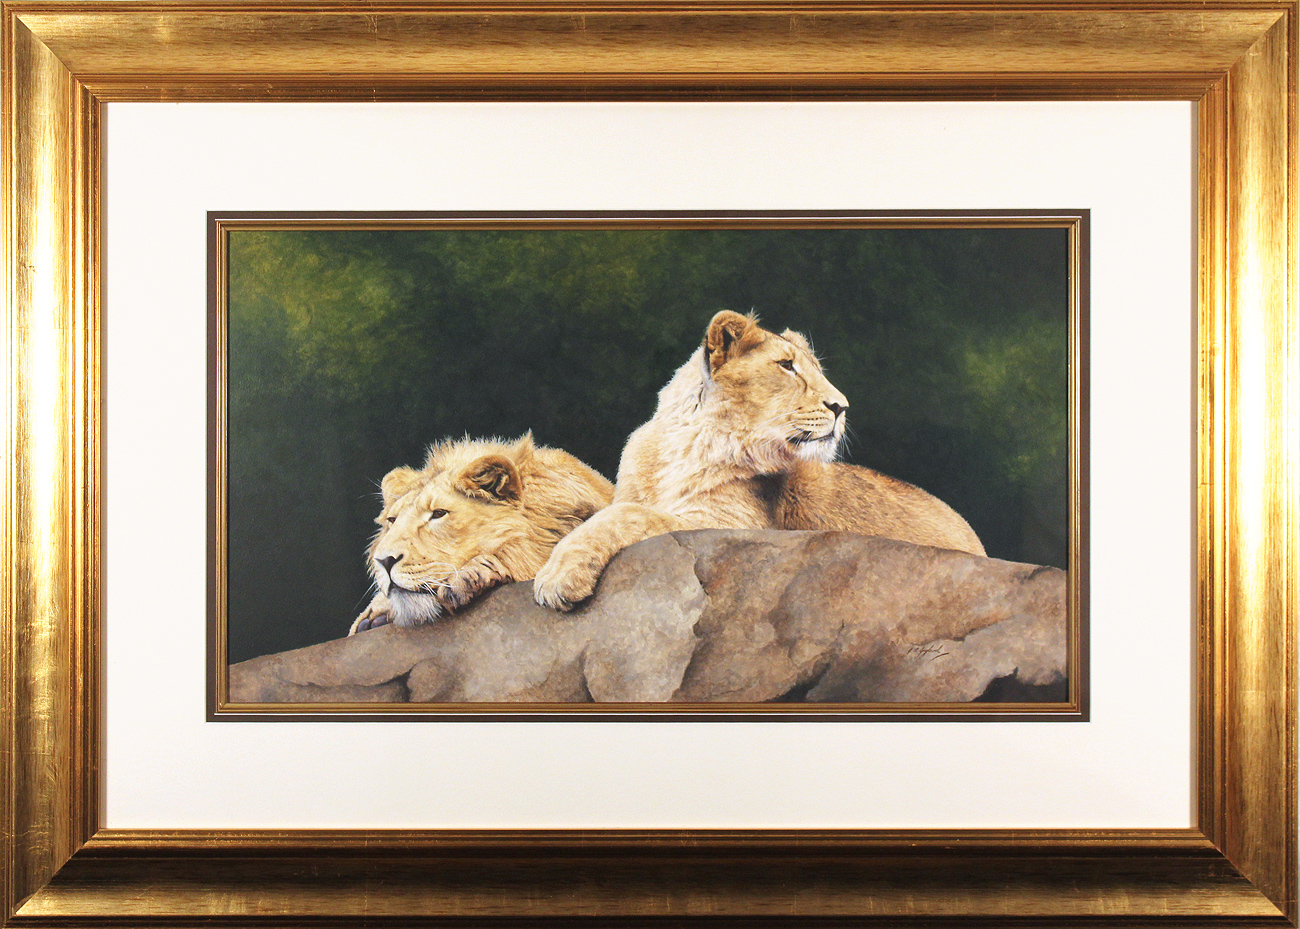 Jacqueline Gaylard, SOFA, Original acrylic painting on board, On the Lookout, click to enlarge